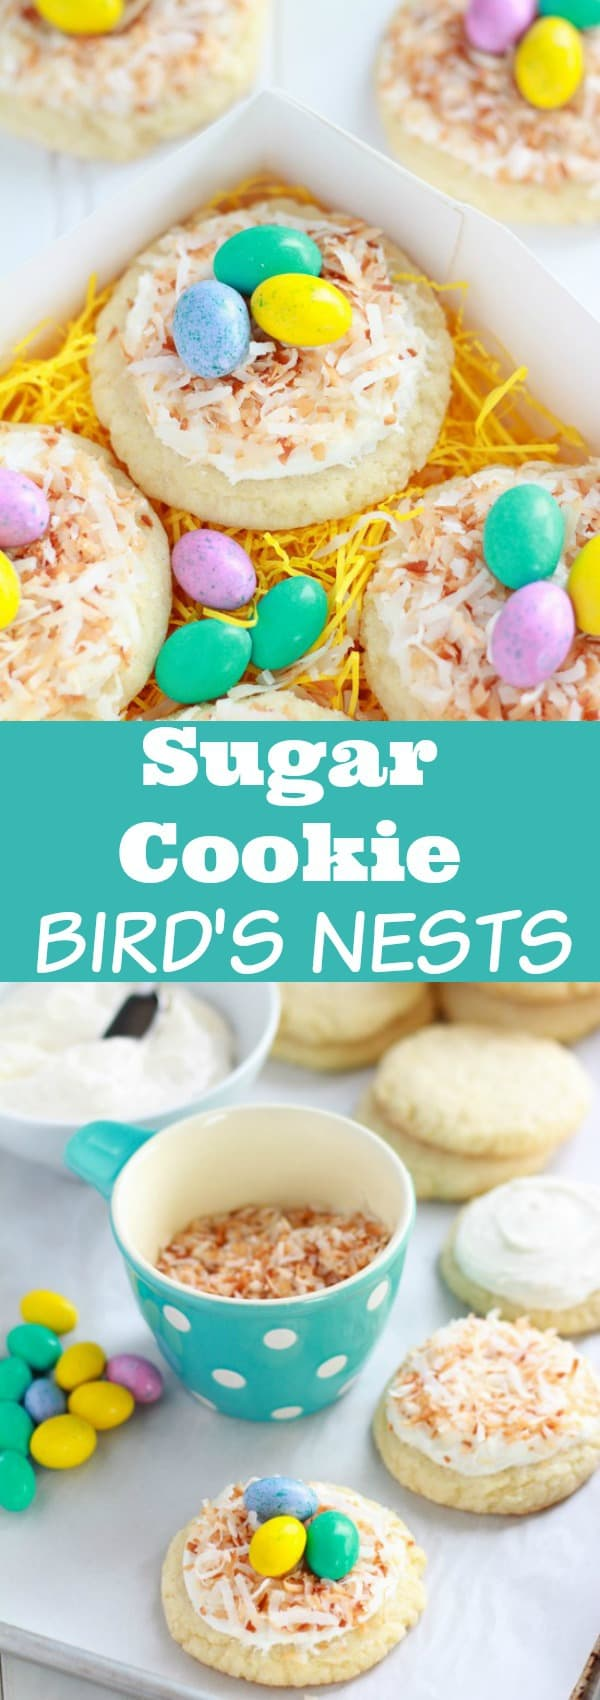 Sugar Cookie Bird's Nests - A fun Spring or Easter dessert!